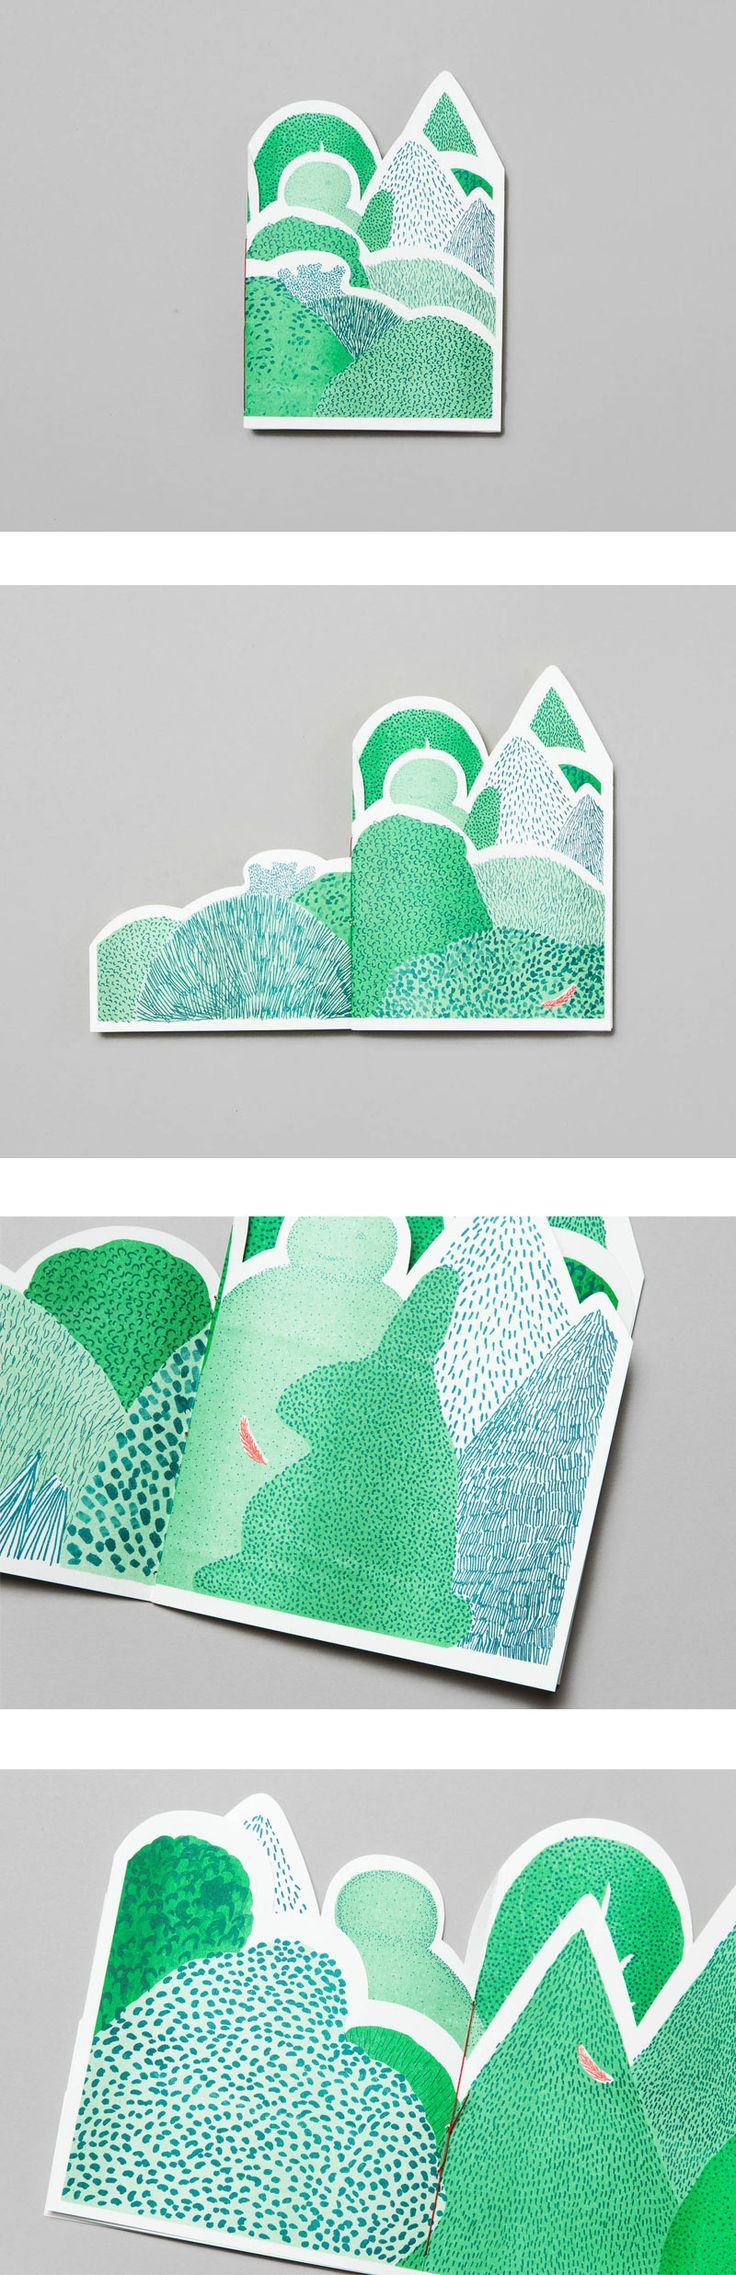 Love how simple patterns can be used to form images.YOUR-MIND: